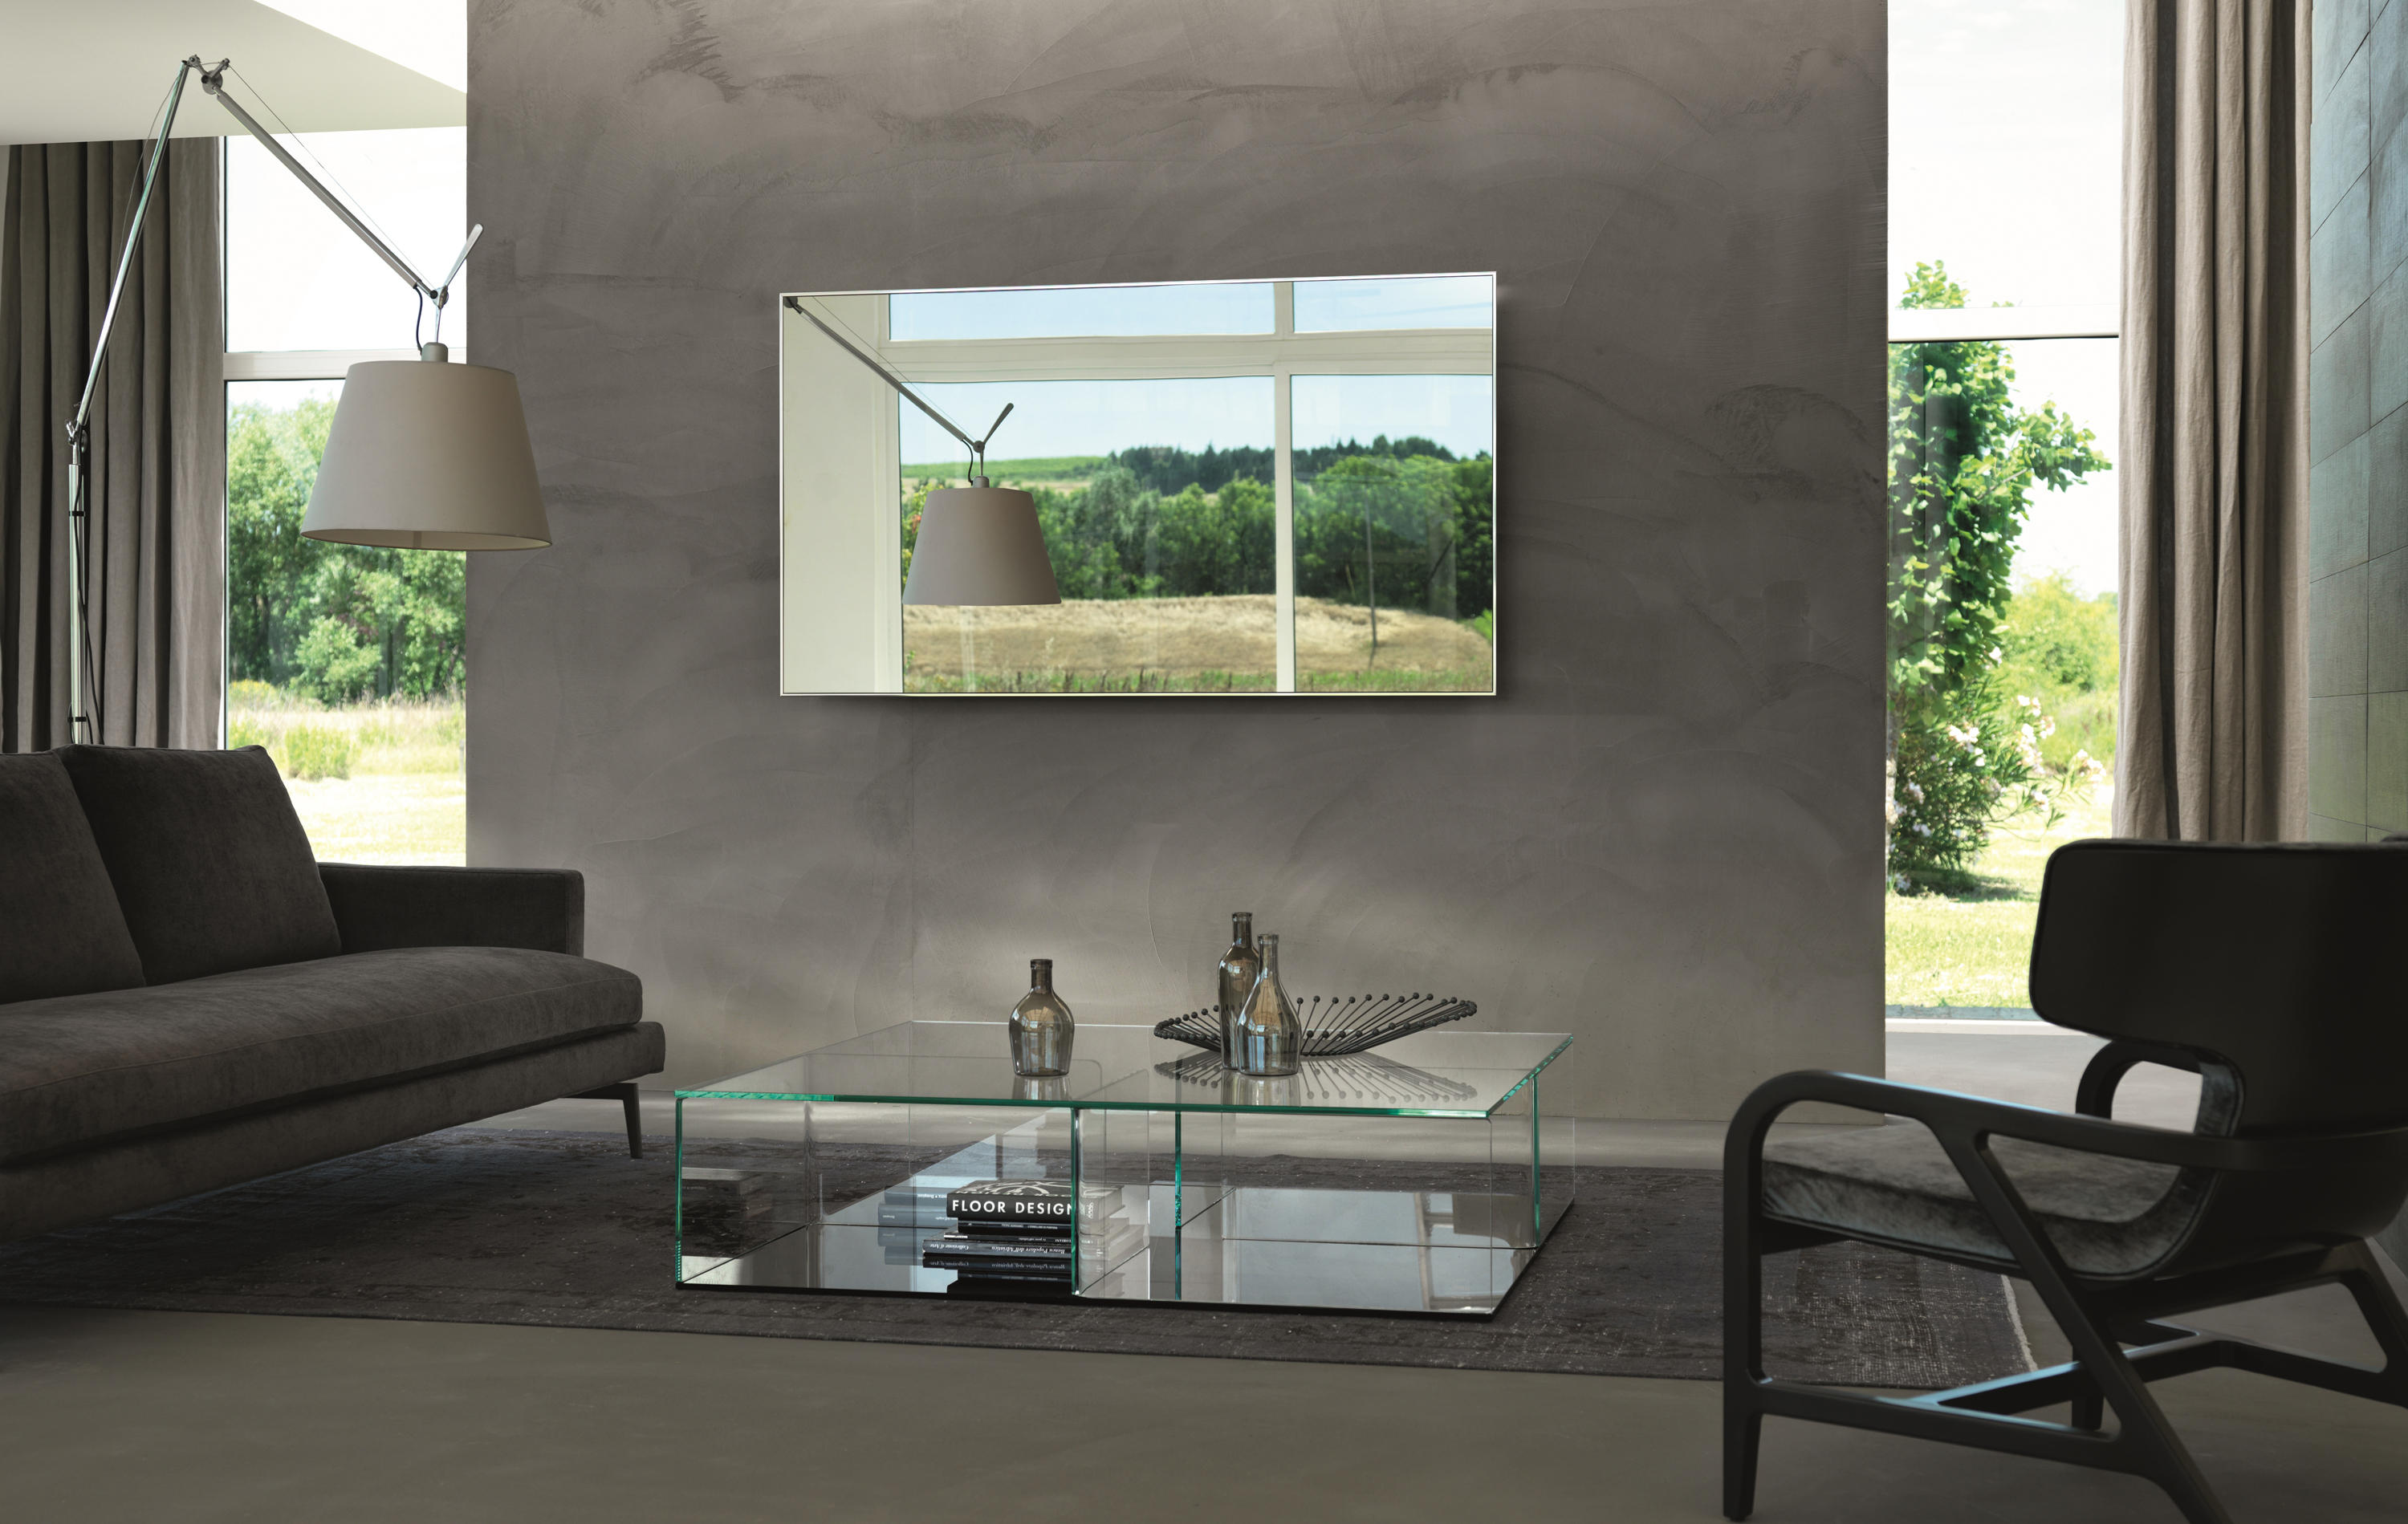 mirage tv spiegel von fiam italia architonic. Black Bedroom Furniture Sets. Home Design Ideas